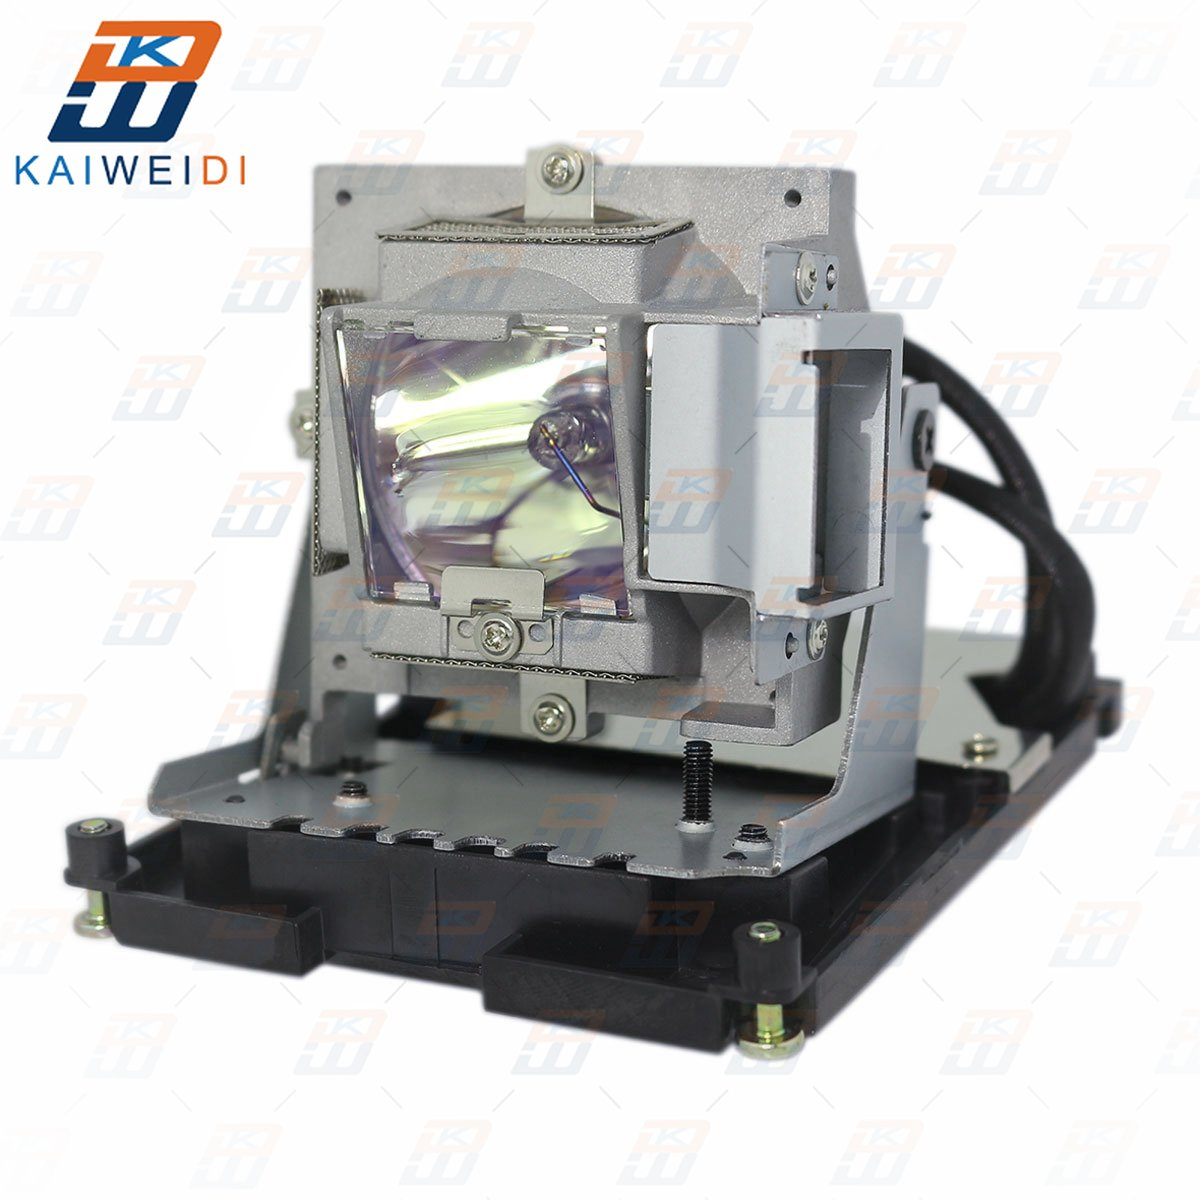 5J.J8805.001 / 5J.JA705.001 High Quality Projector Lamp With Housing For Benq HC1200 ,MH740, SH915, SW916, SX912 Projectors